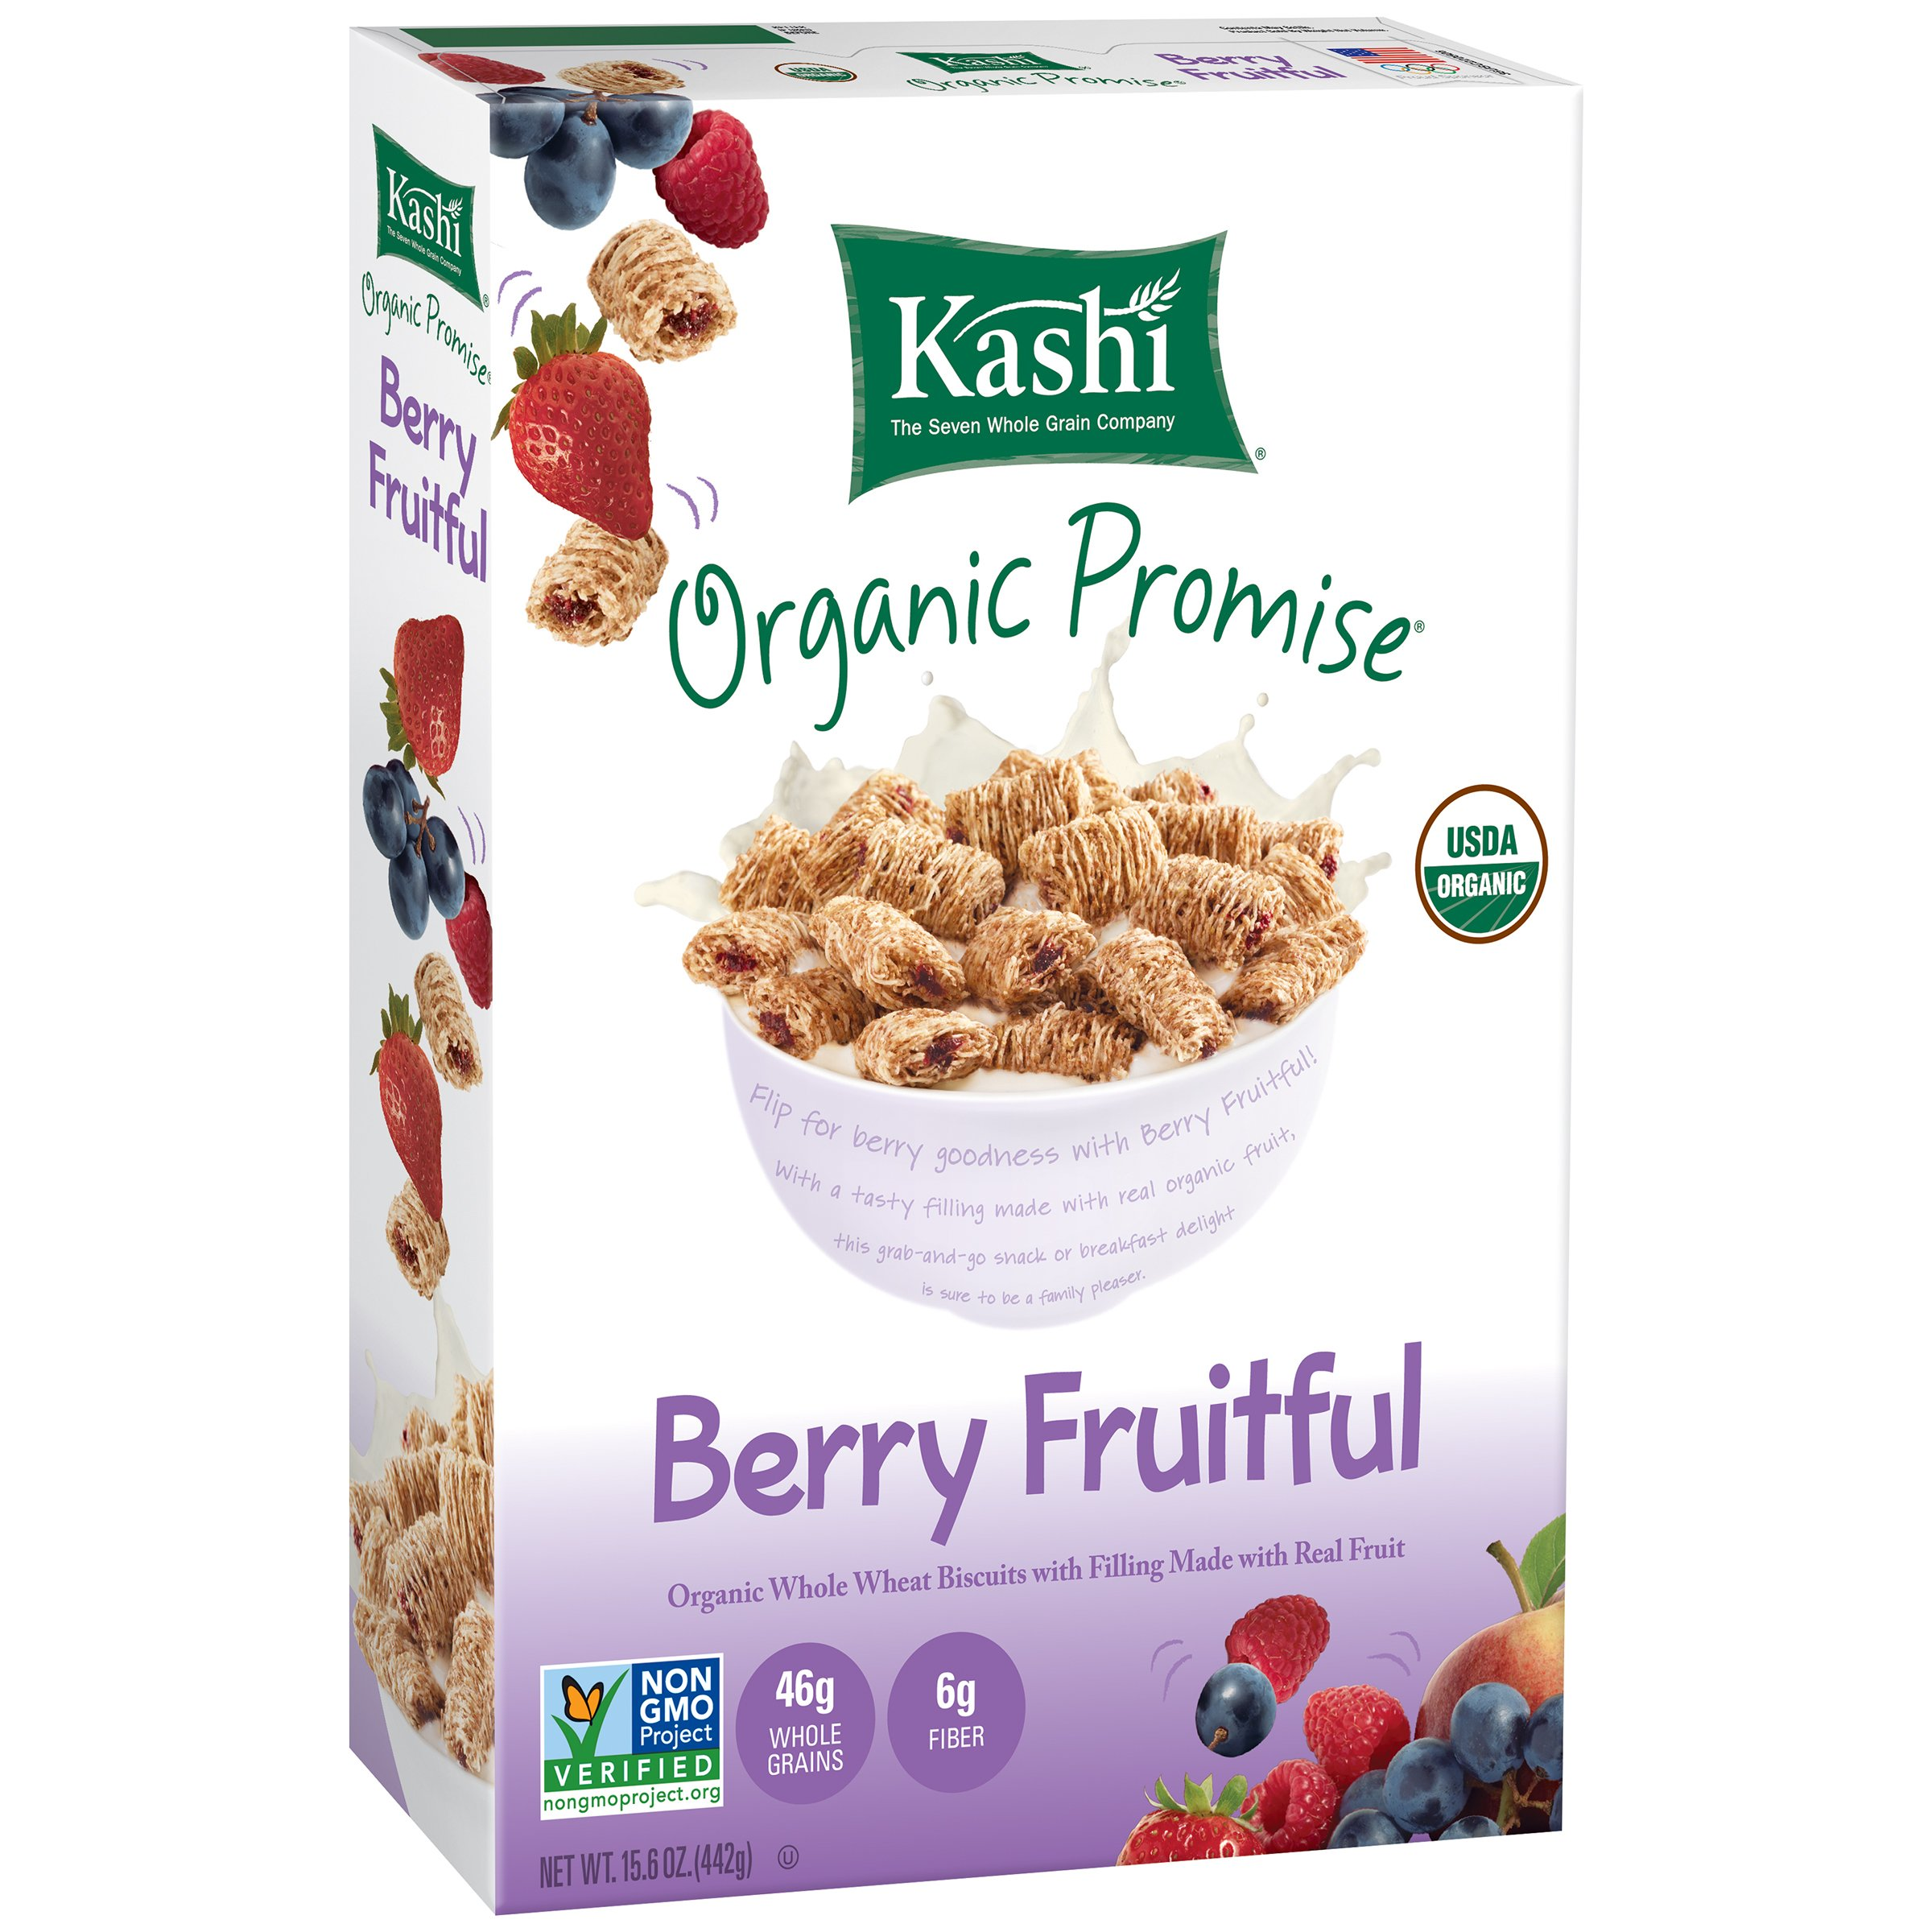 Kashi Organic Promise Cereal, Berry Fruitful Whole Wheat Biscuits, 15.6 Ounce (Pack of 12)